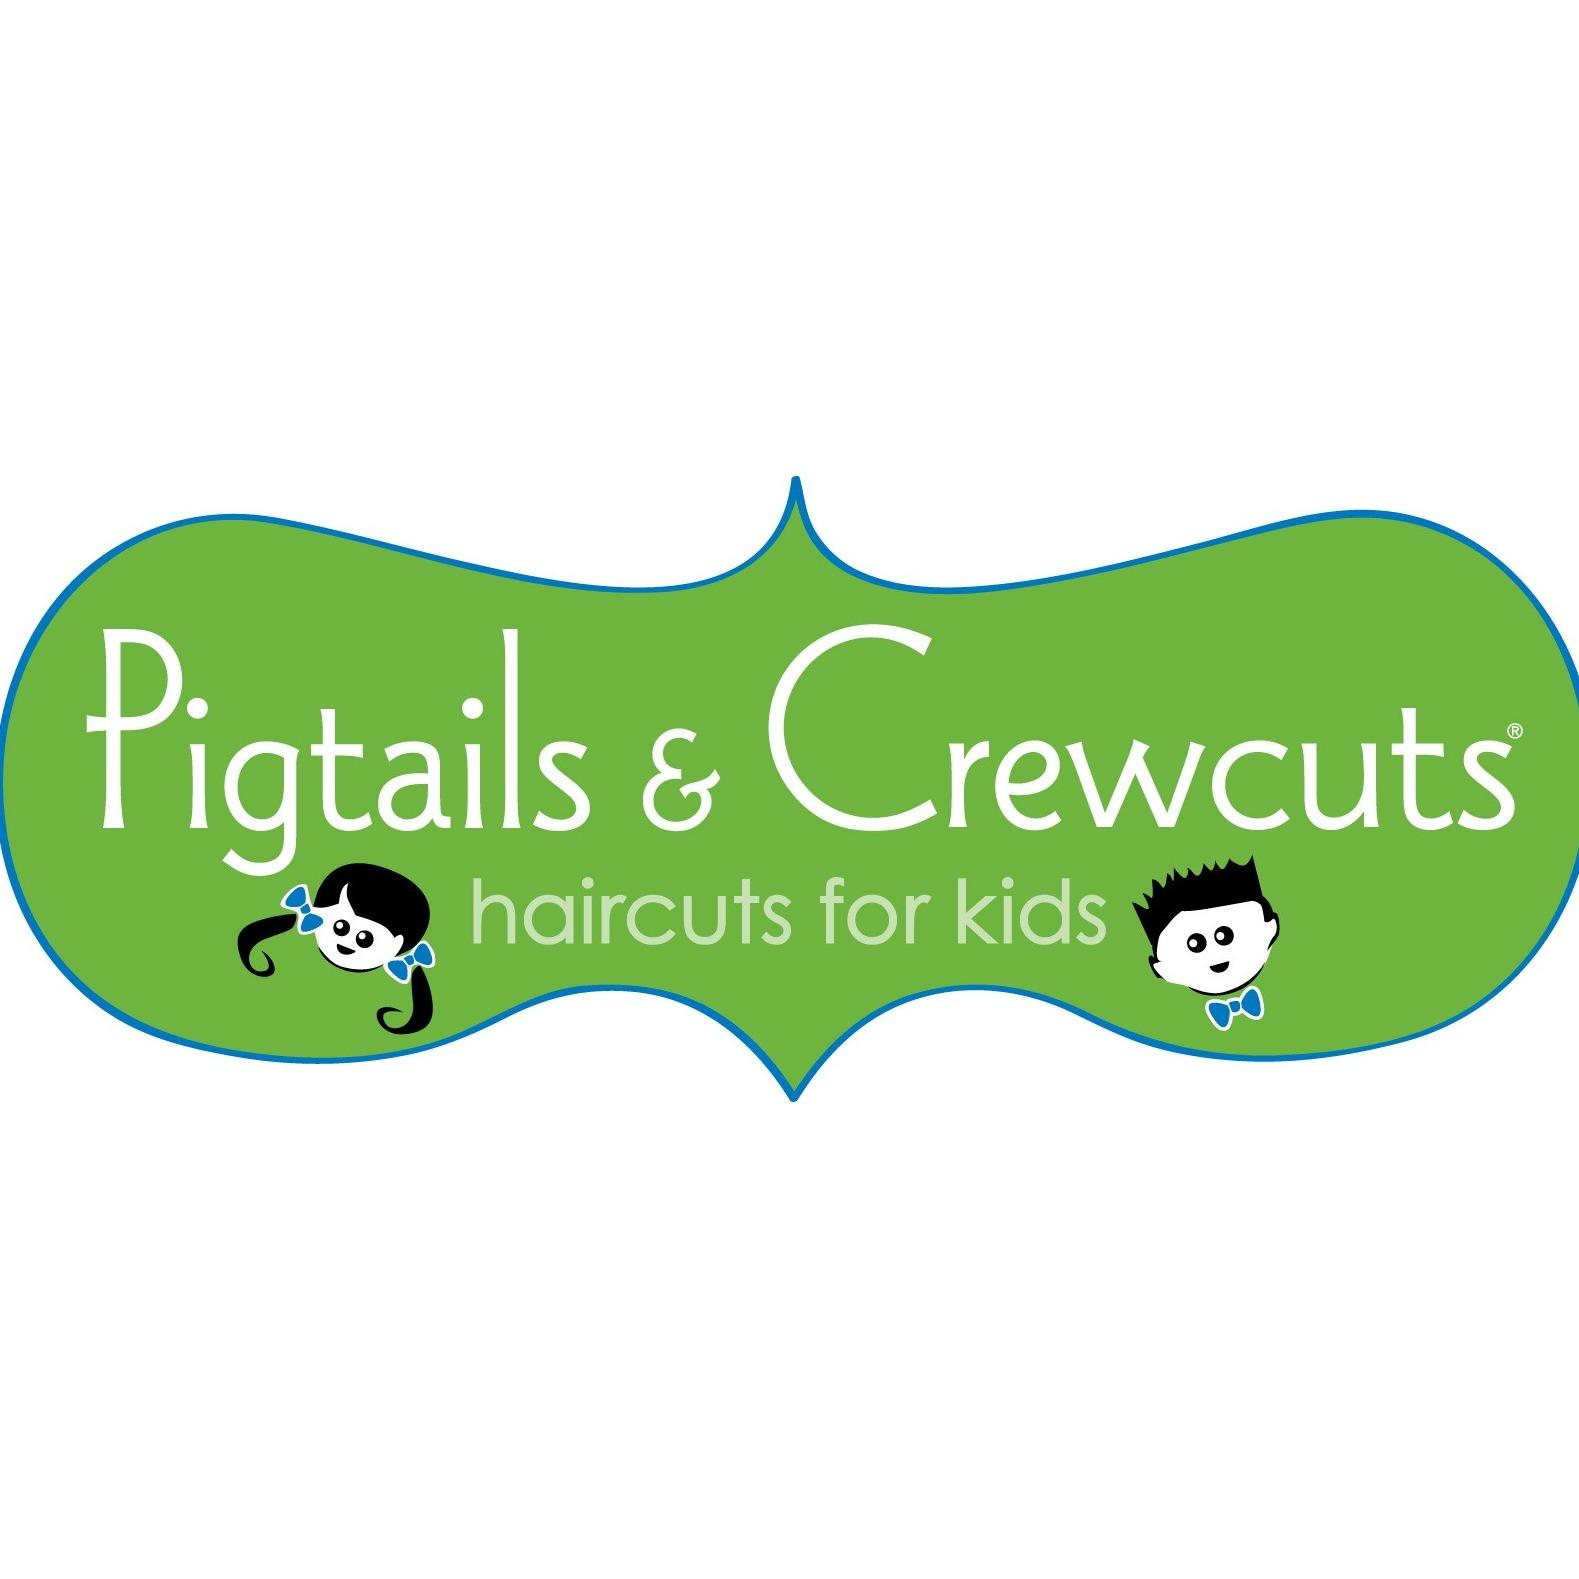 Pigtails & Crewcuts: Haircuts for Kids - Myrtle Beach image 0